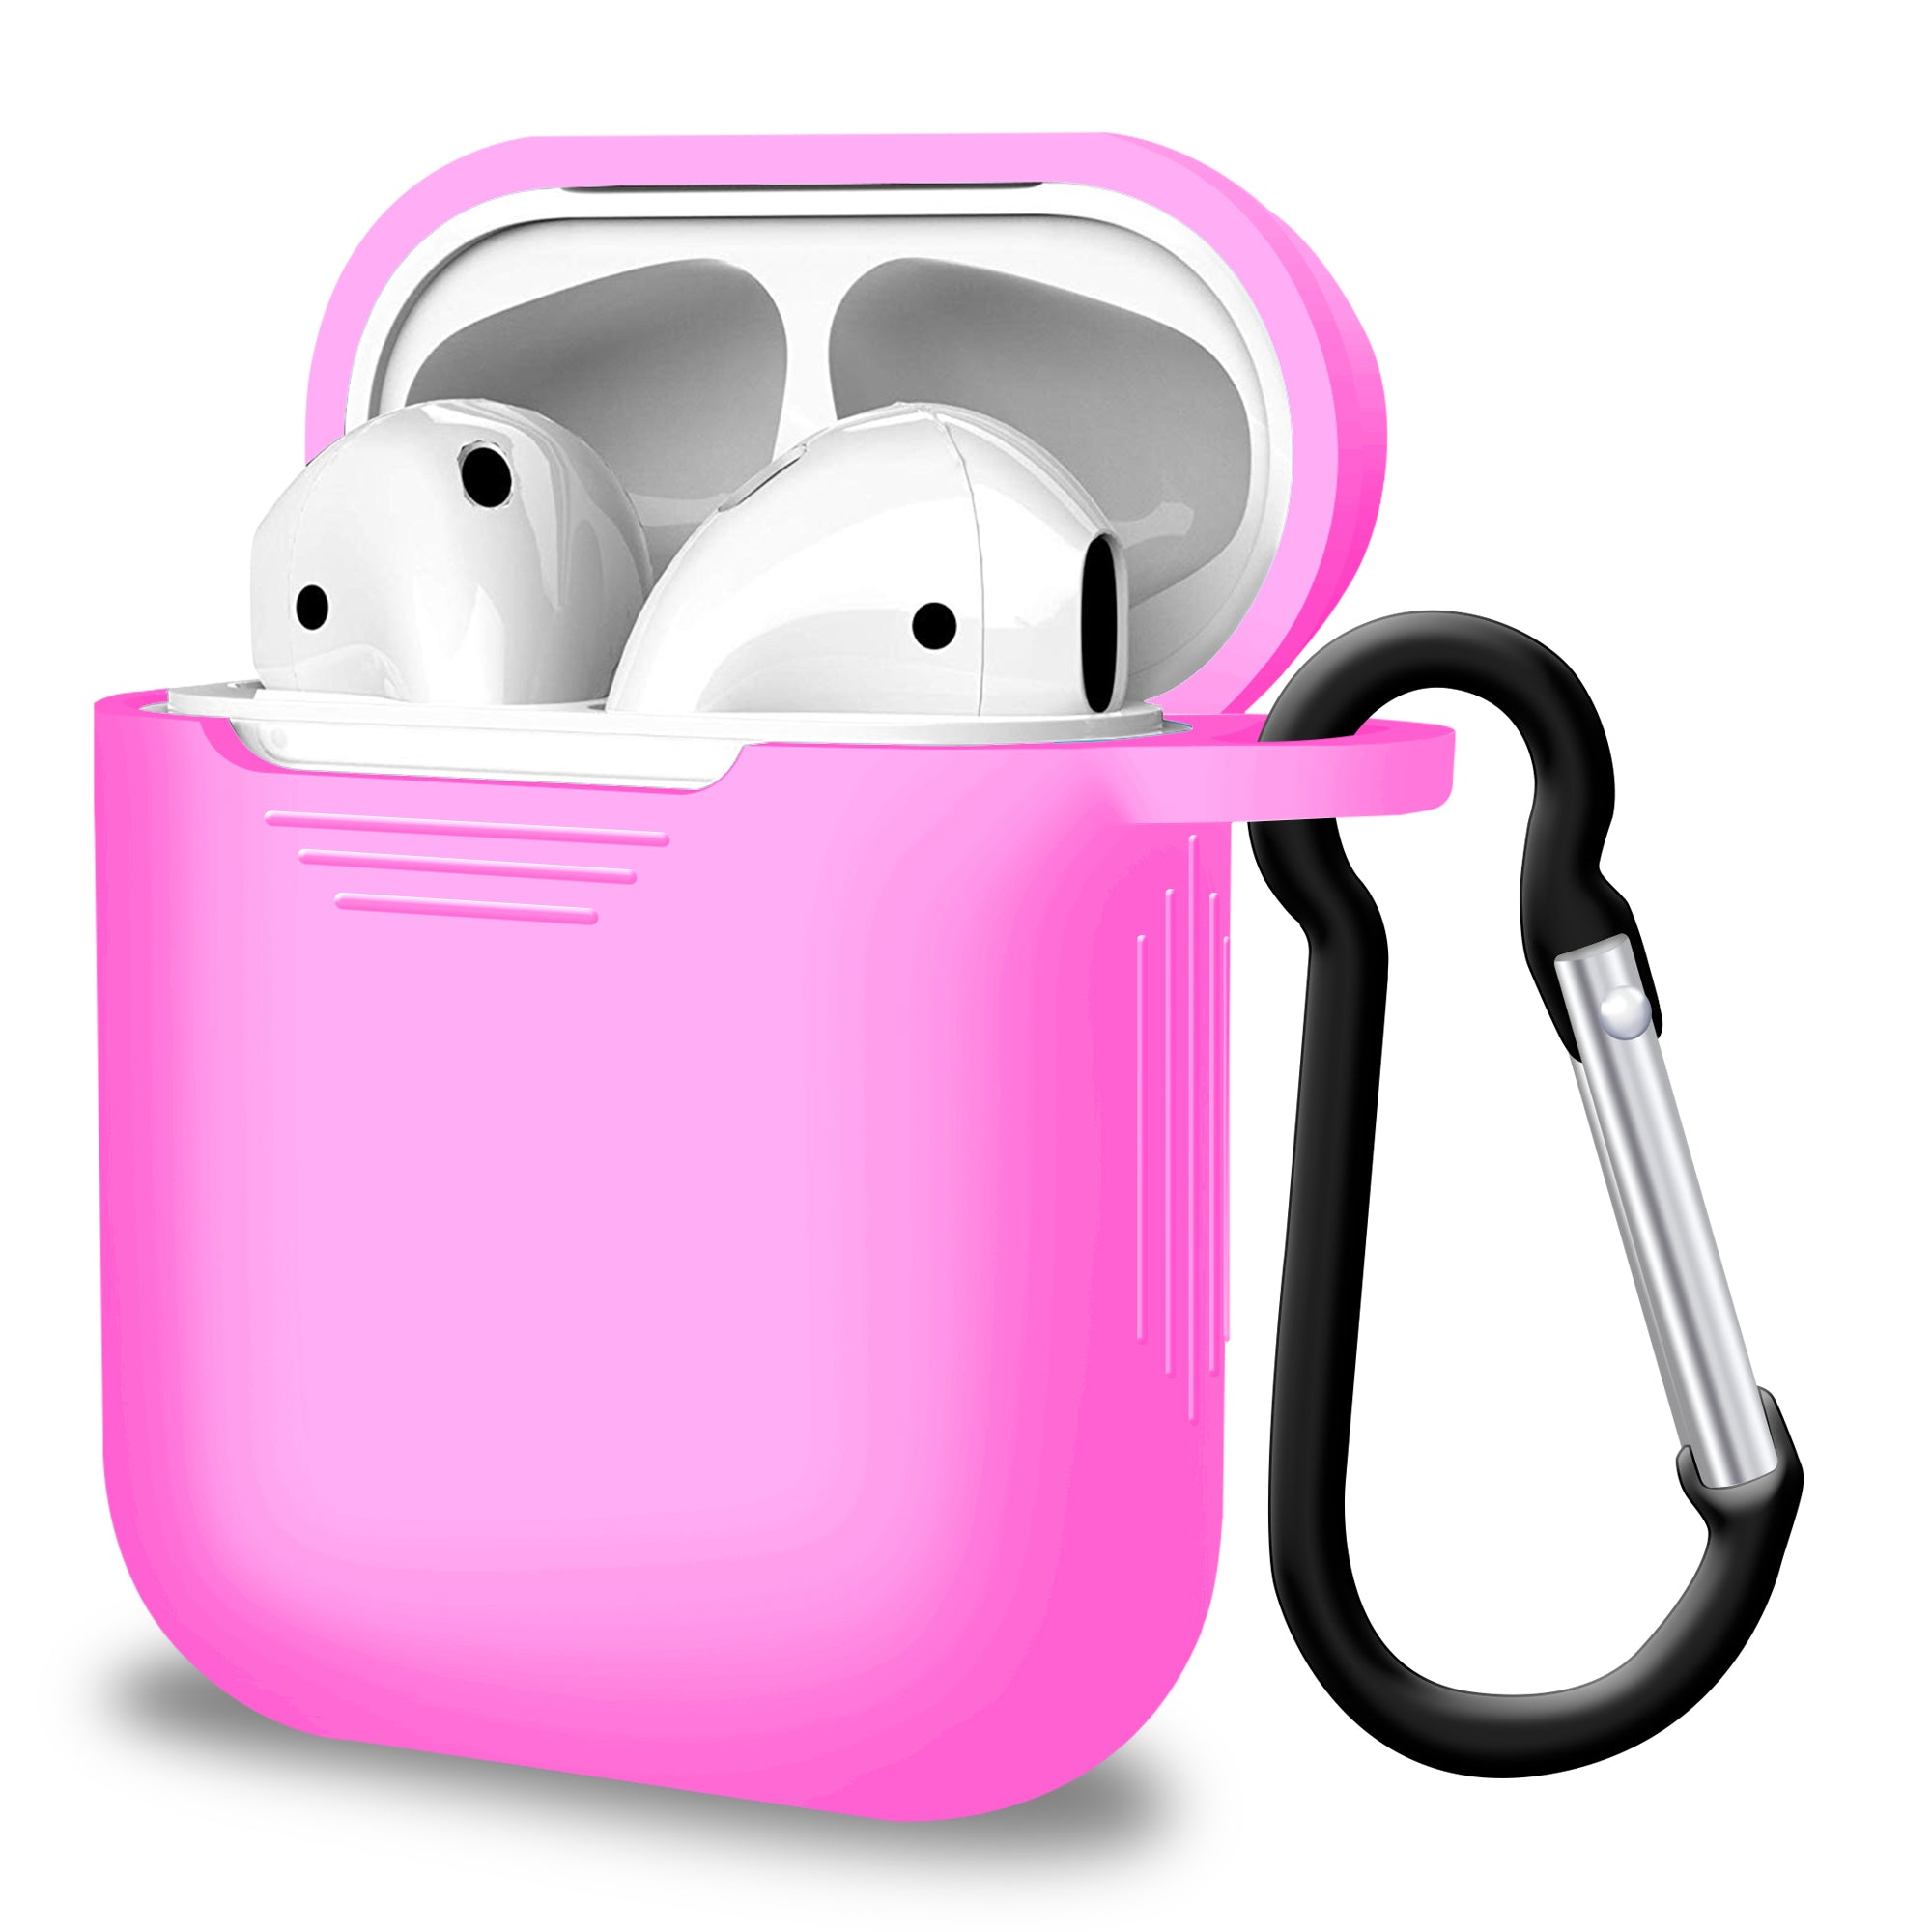 2 in 1 Apple Airpods Silicone Case Earphone Charge Skin Cover - Pink, Audio Accessories by TradeNRG